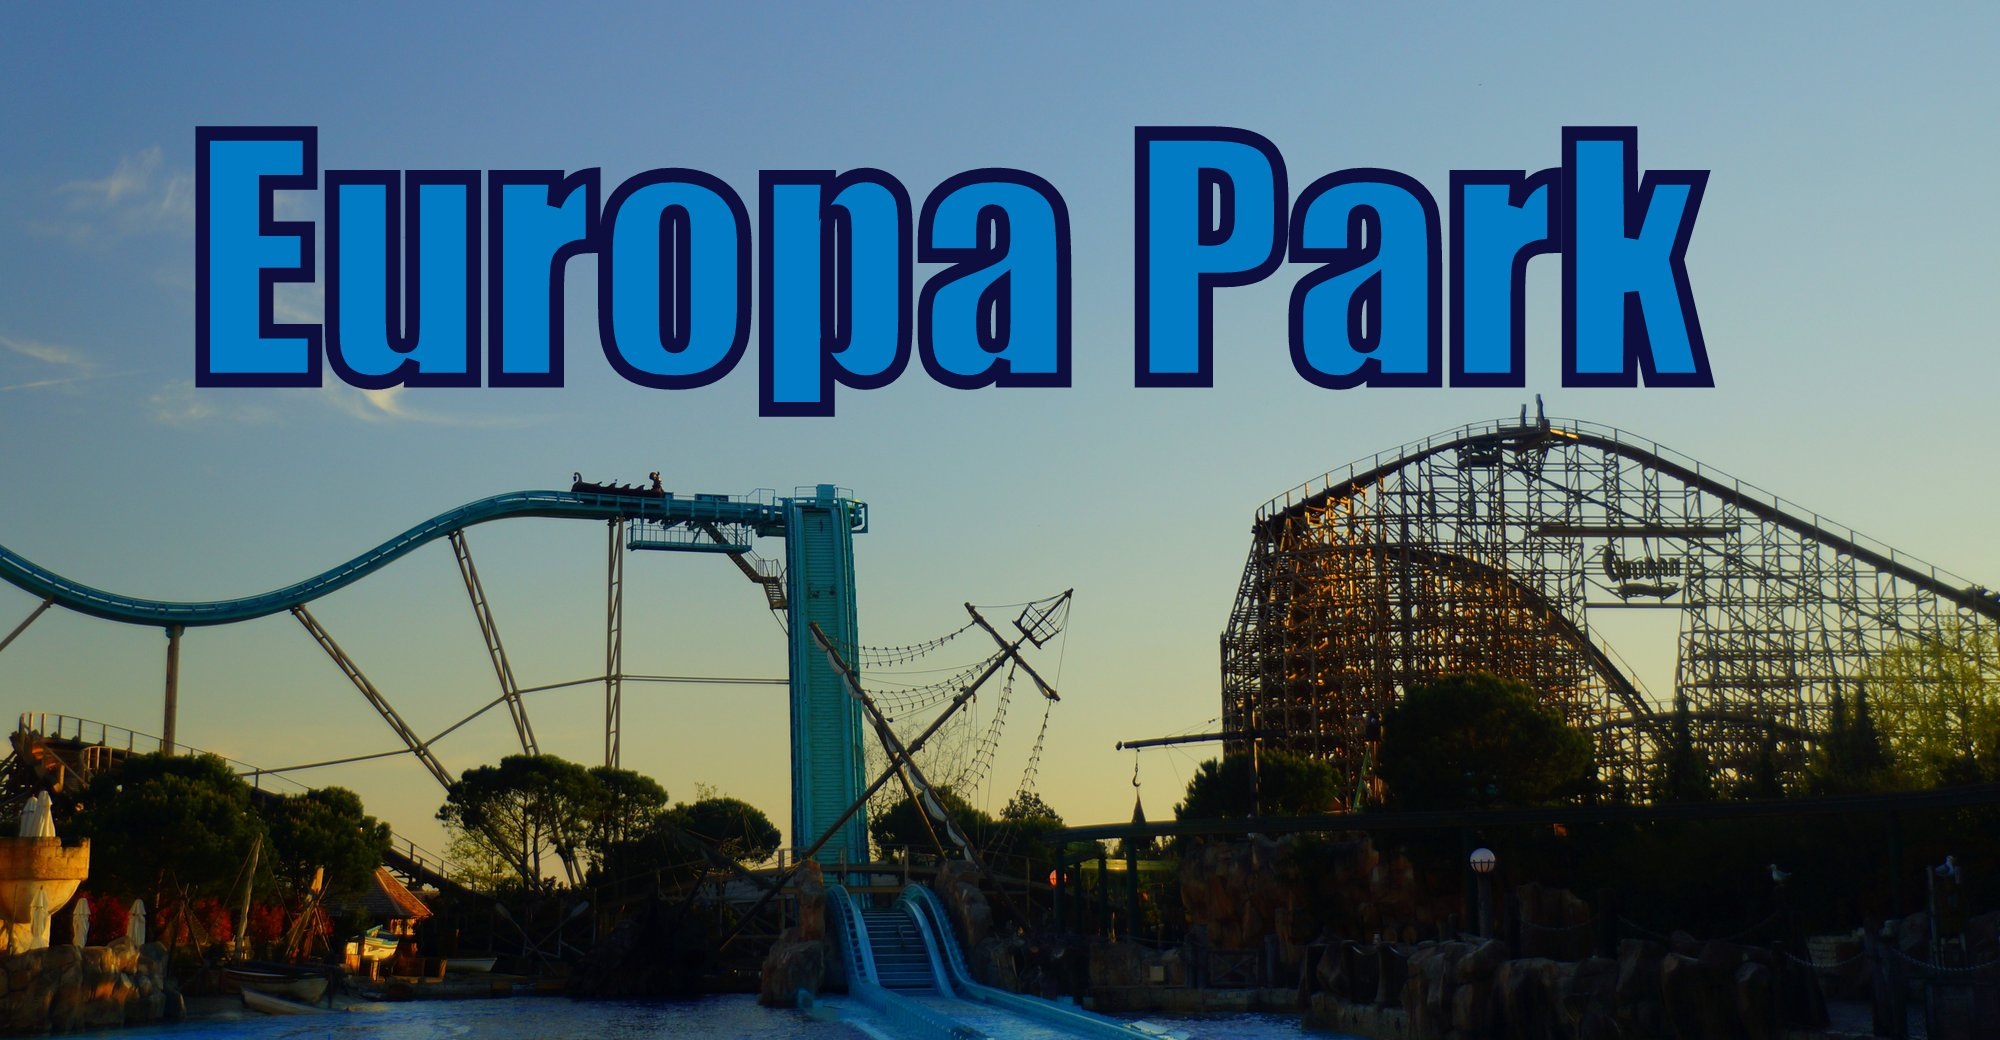 Enjoying the rides at Europa-Park in Germany